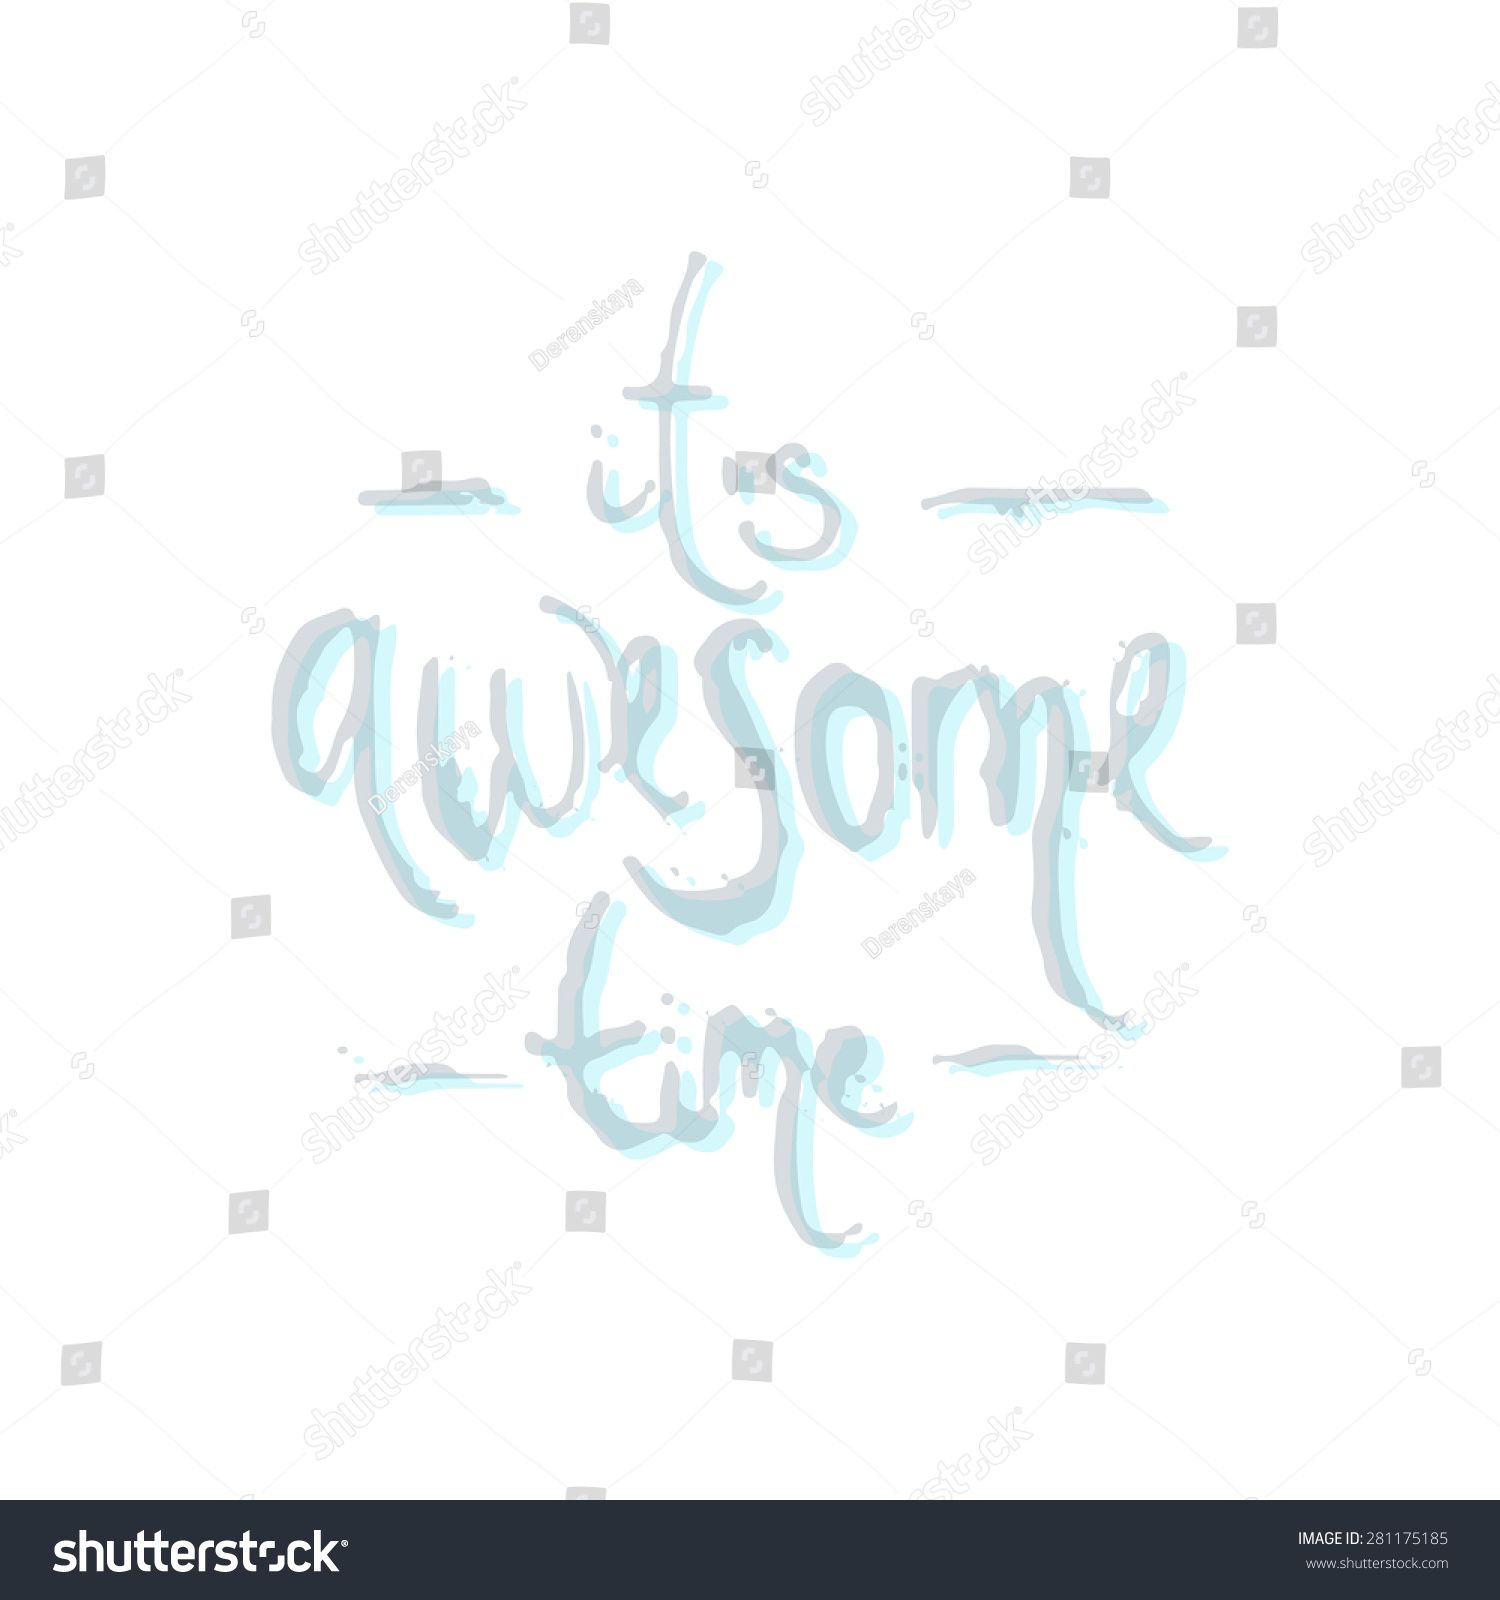 Hand drawn inspirational and encouraging quote Vector